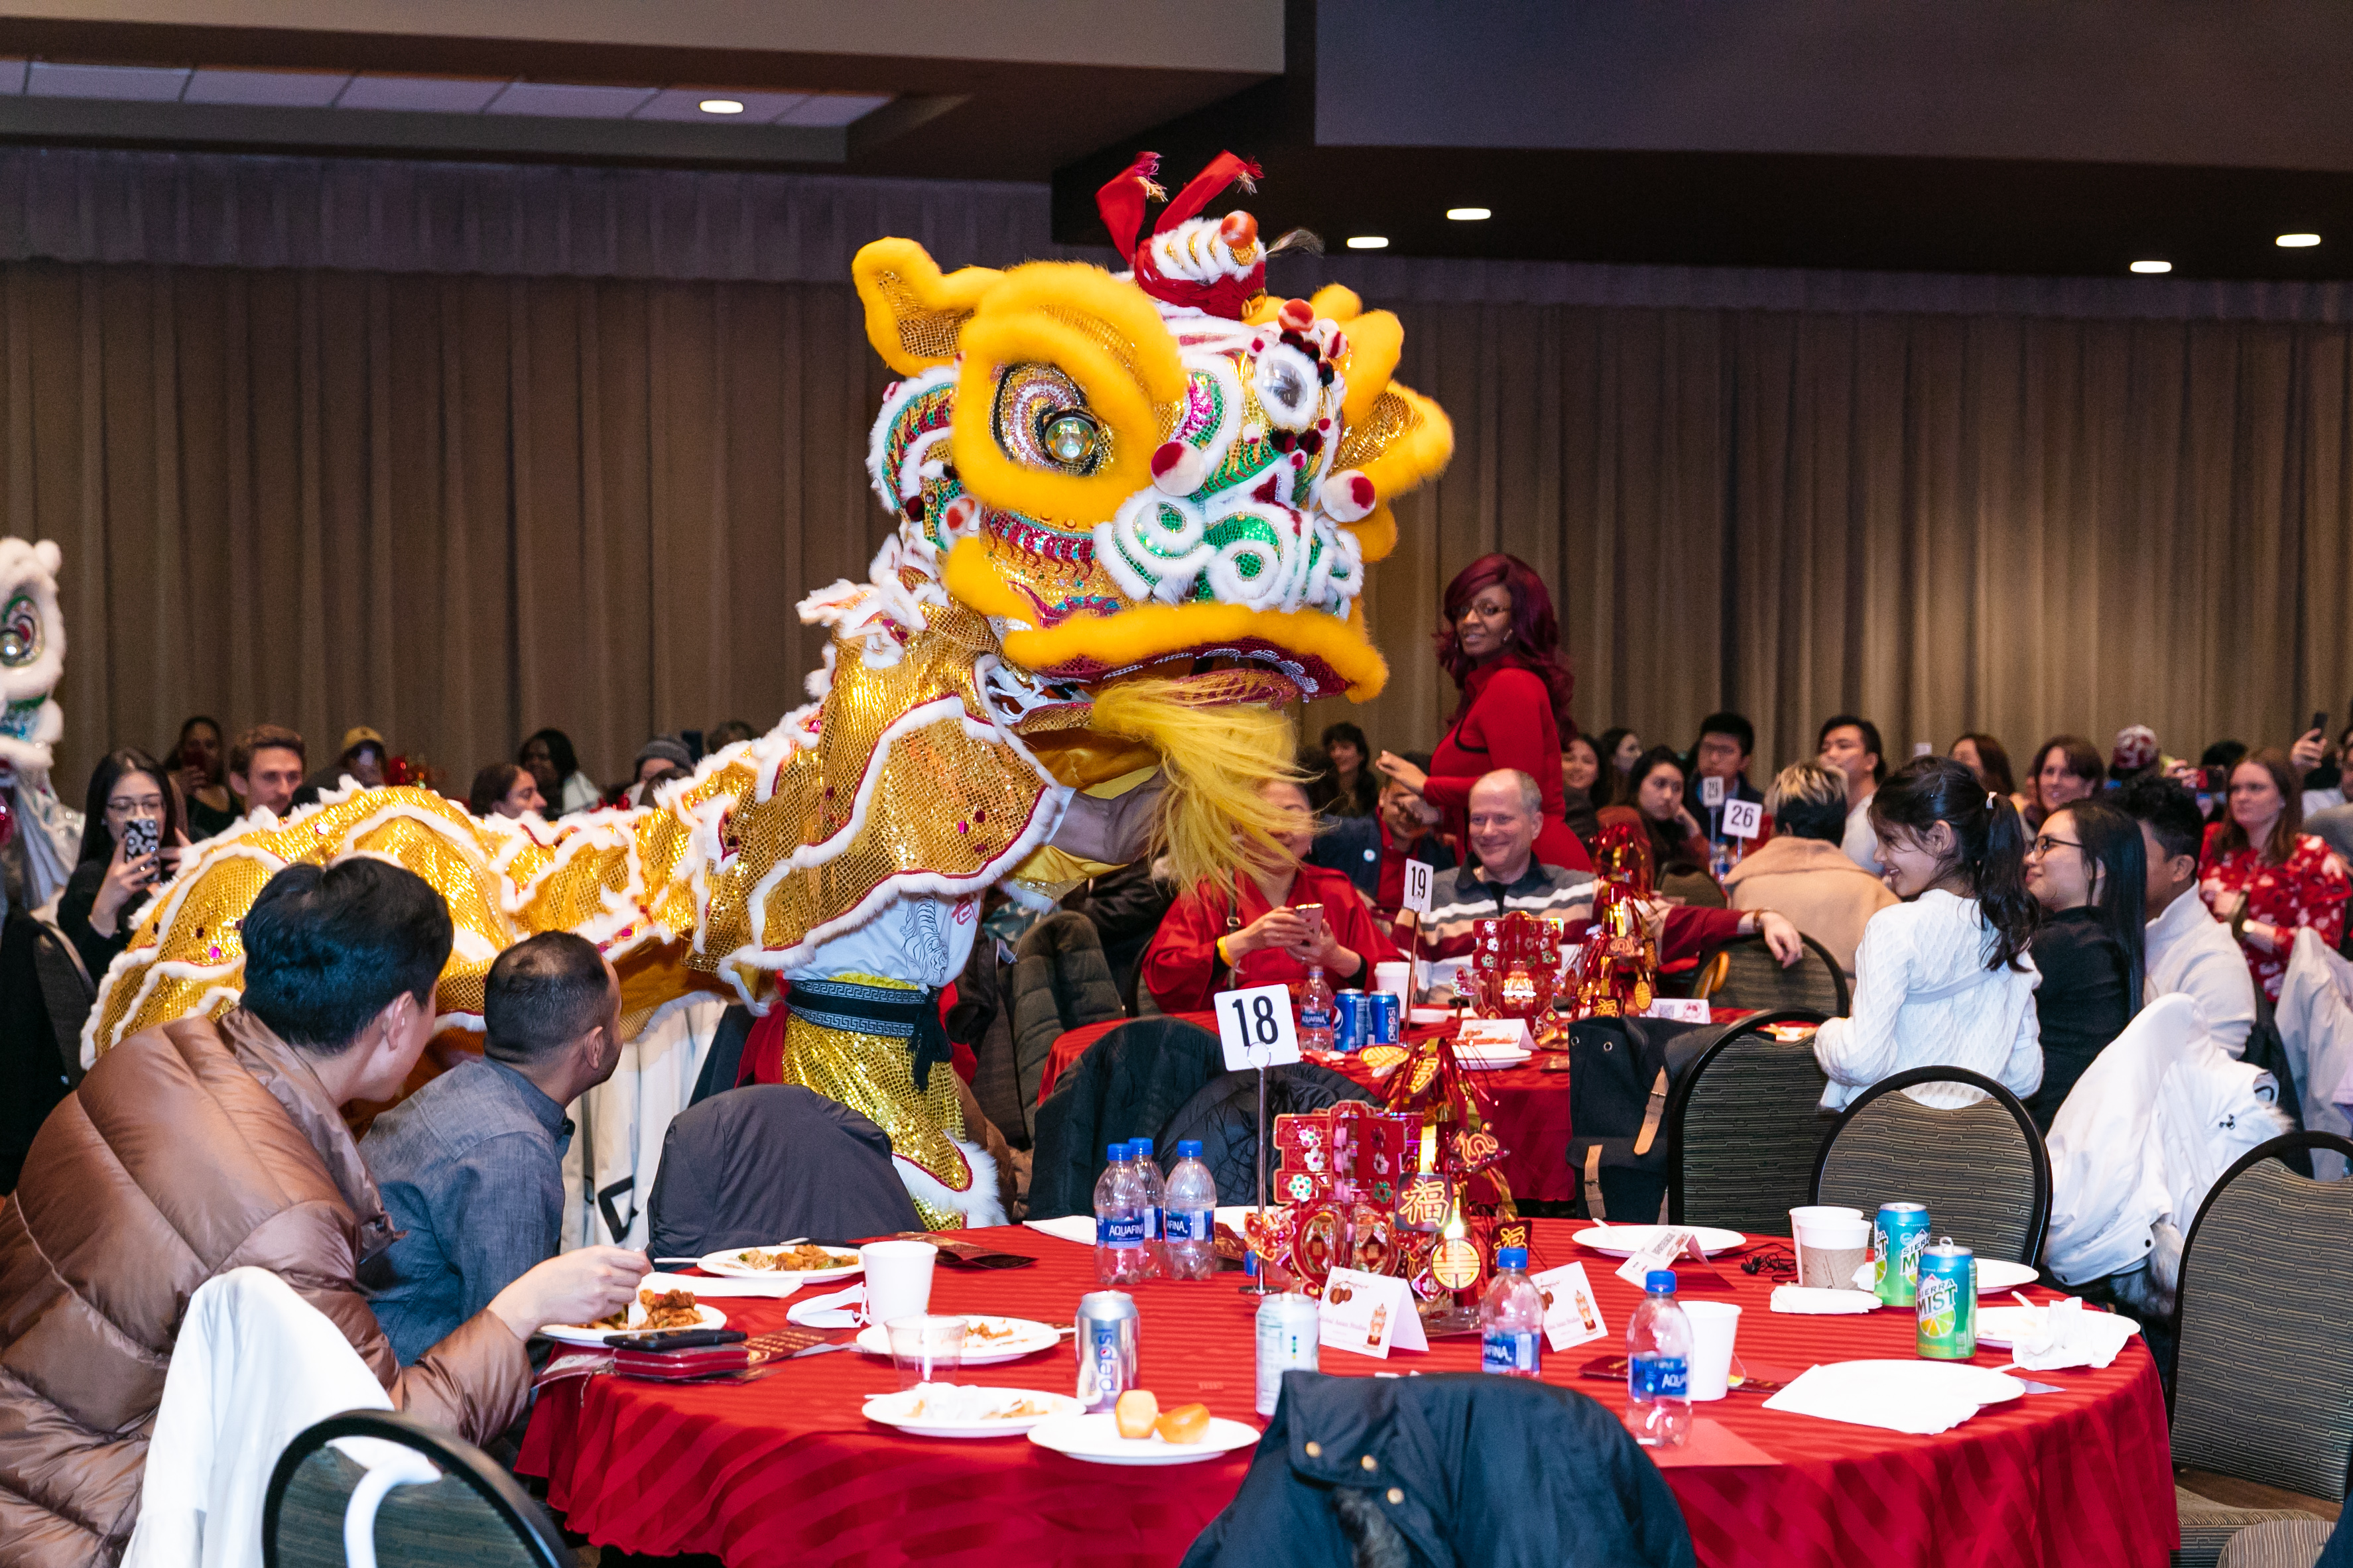 Guests were entertained by a traditional Chinese lion dance during the celebration. (DePaul University/Randall Spriggs)